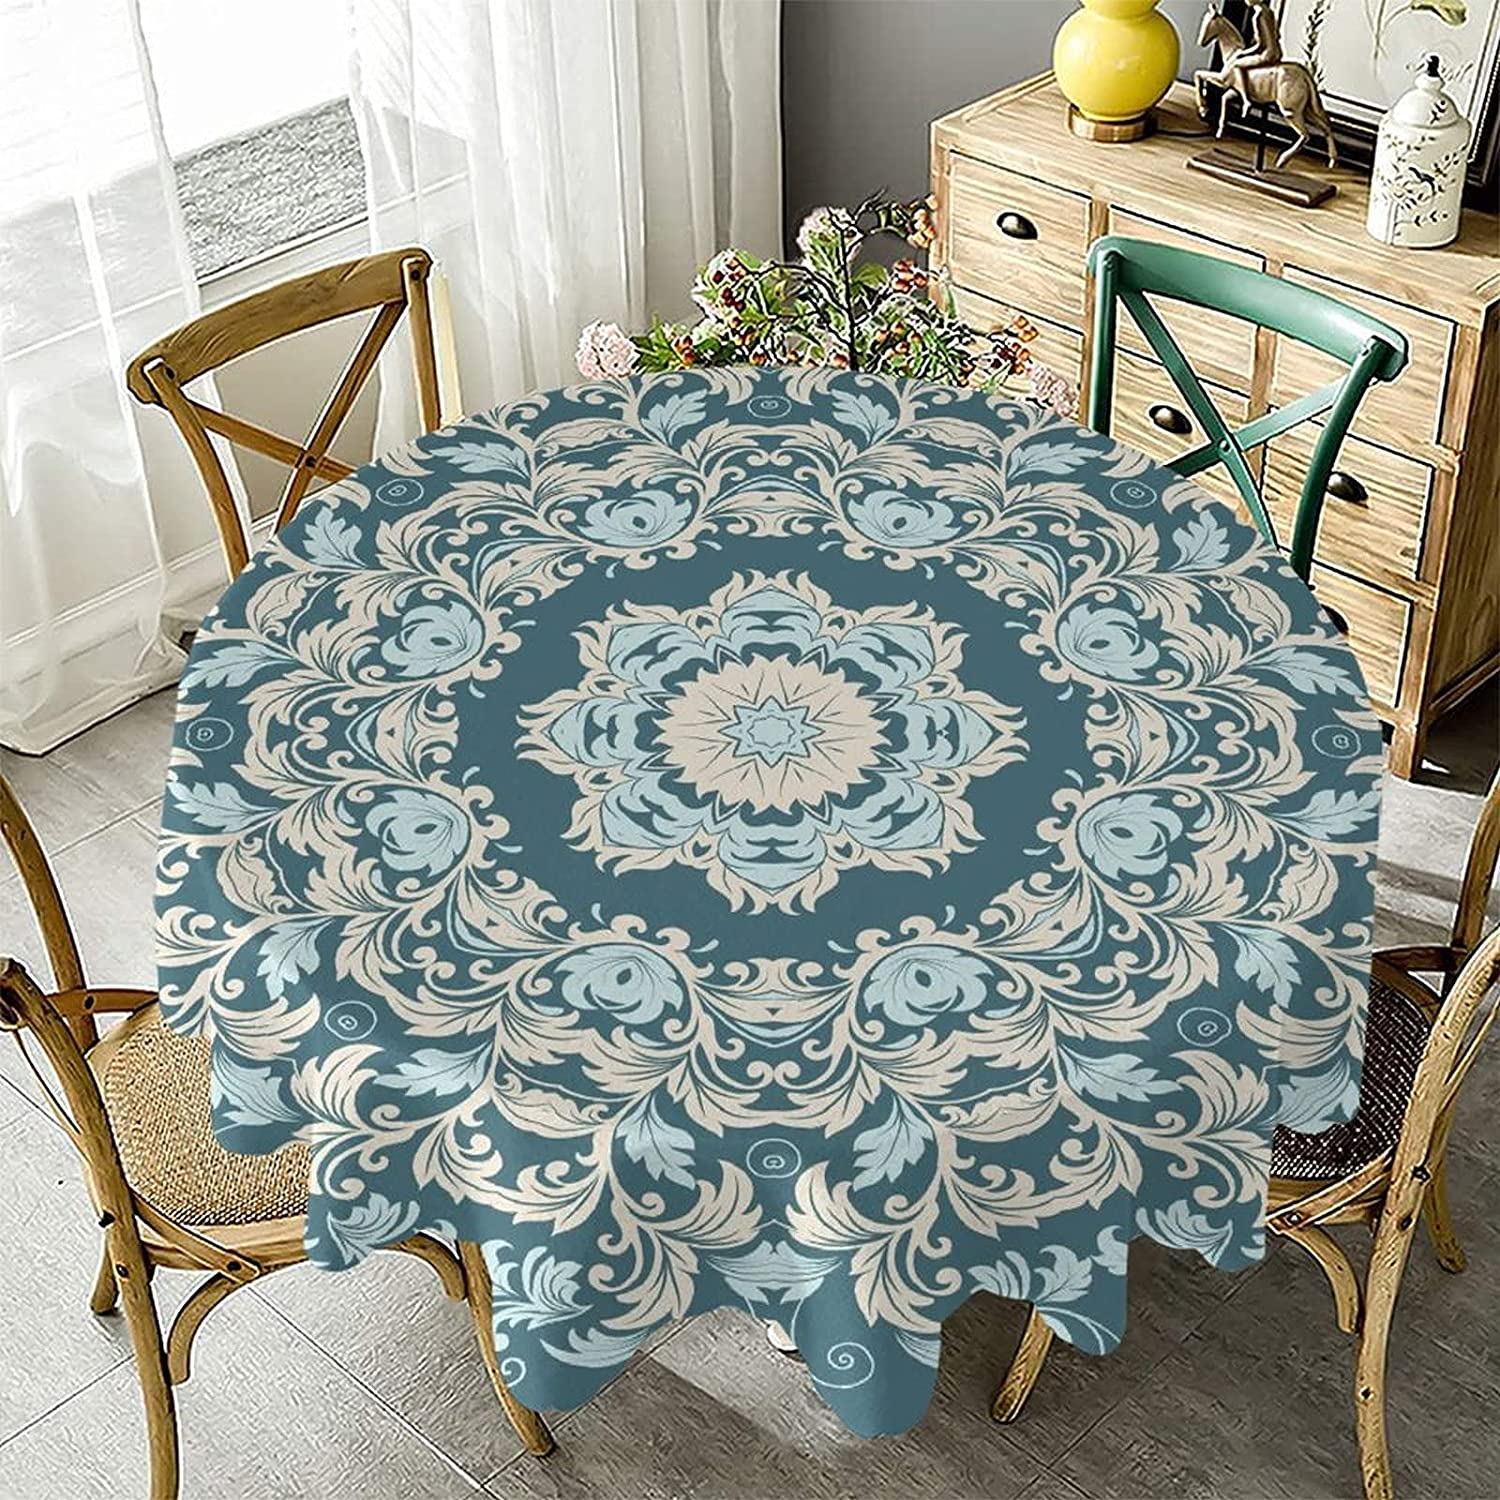 Round Luxury Tablecloth Waterproof Stain Selling and selling Wrinkle Washable Resistant